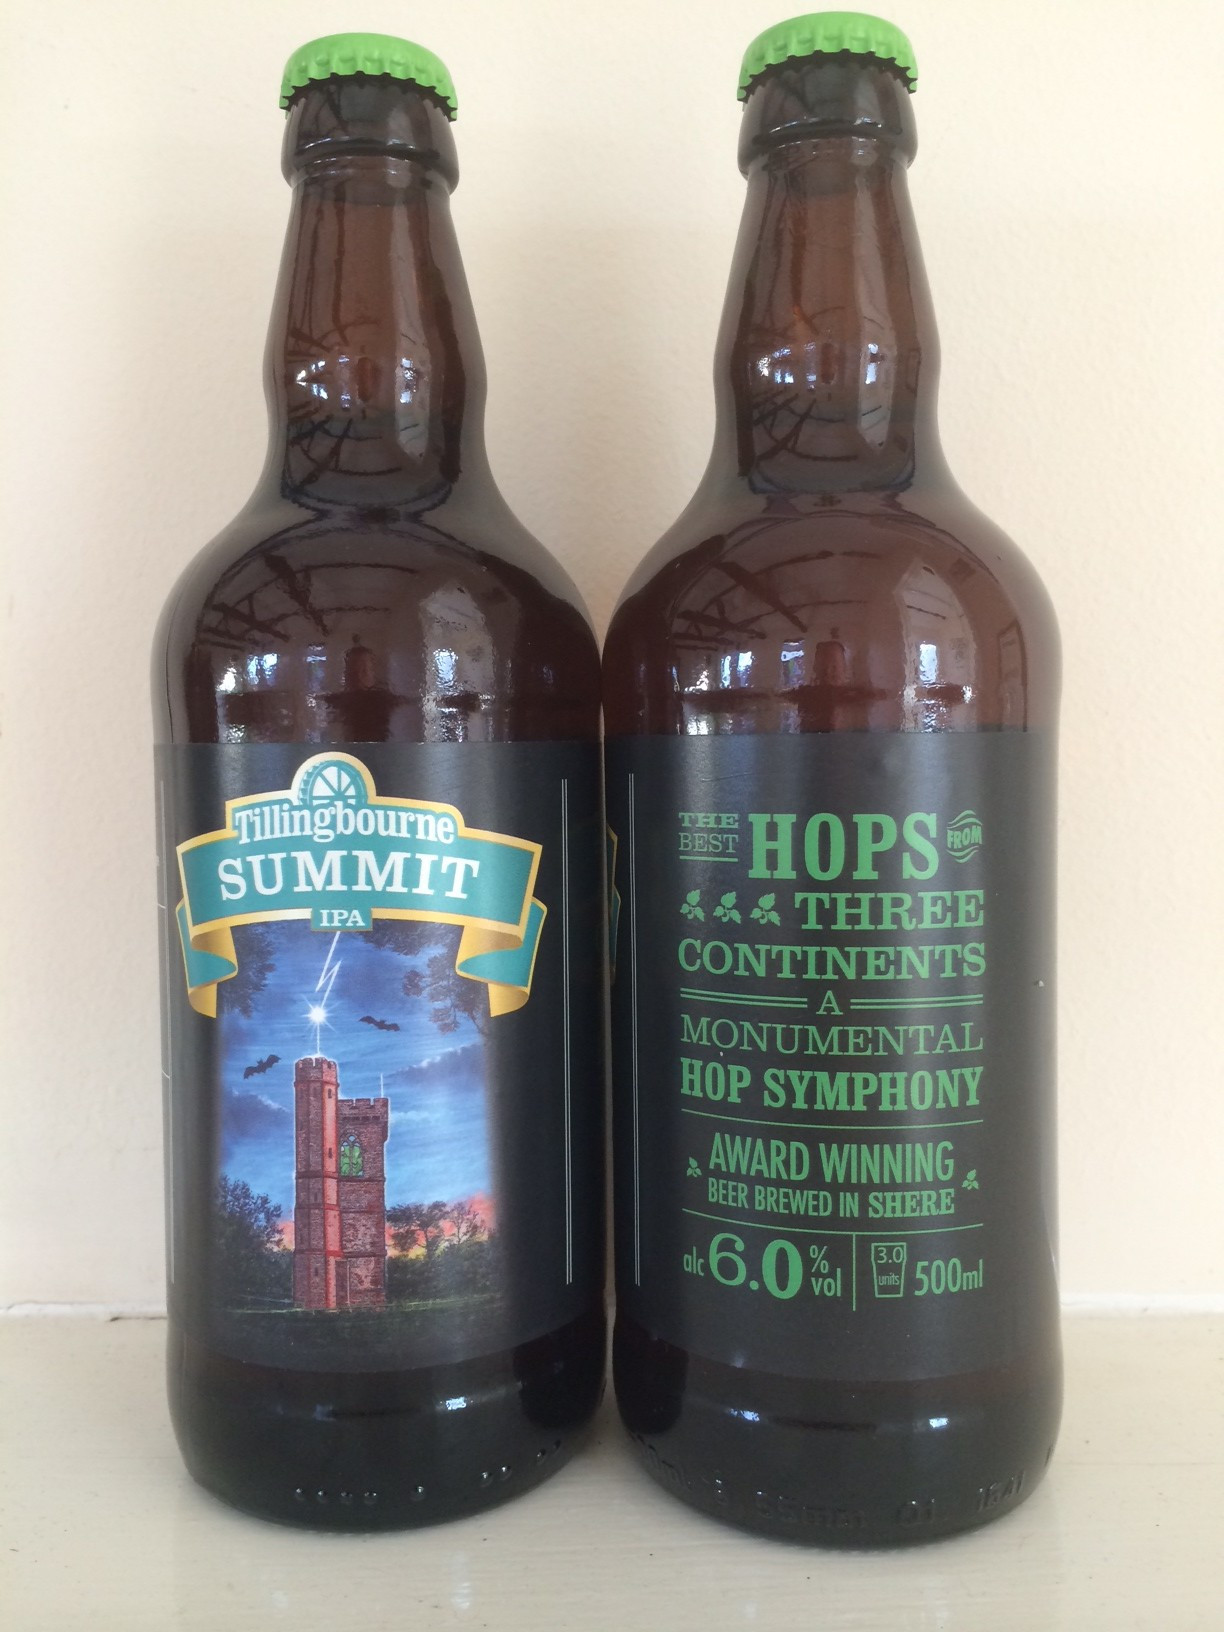 Bottles - Summit IPA